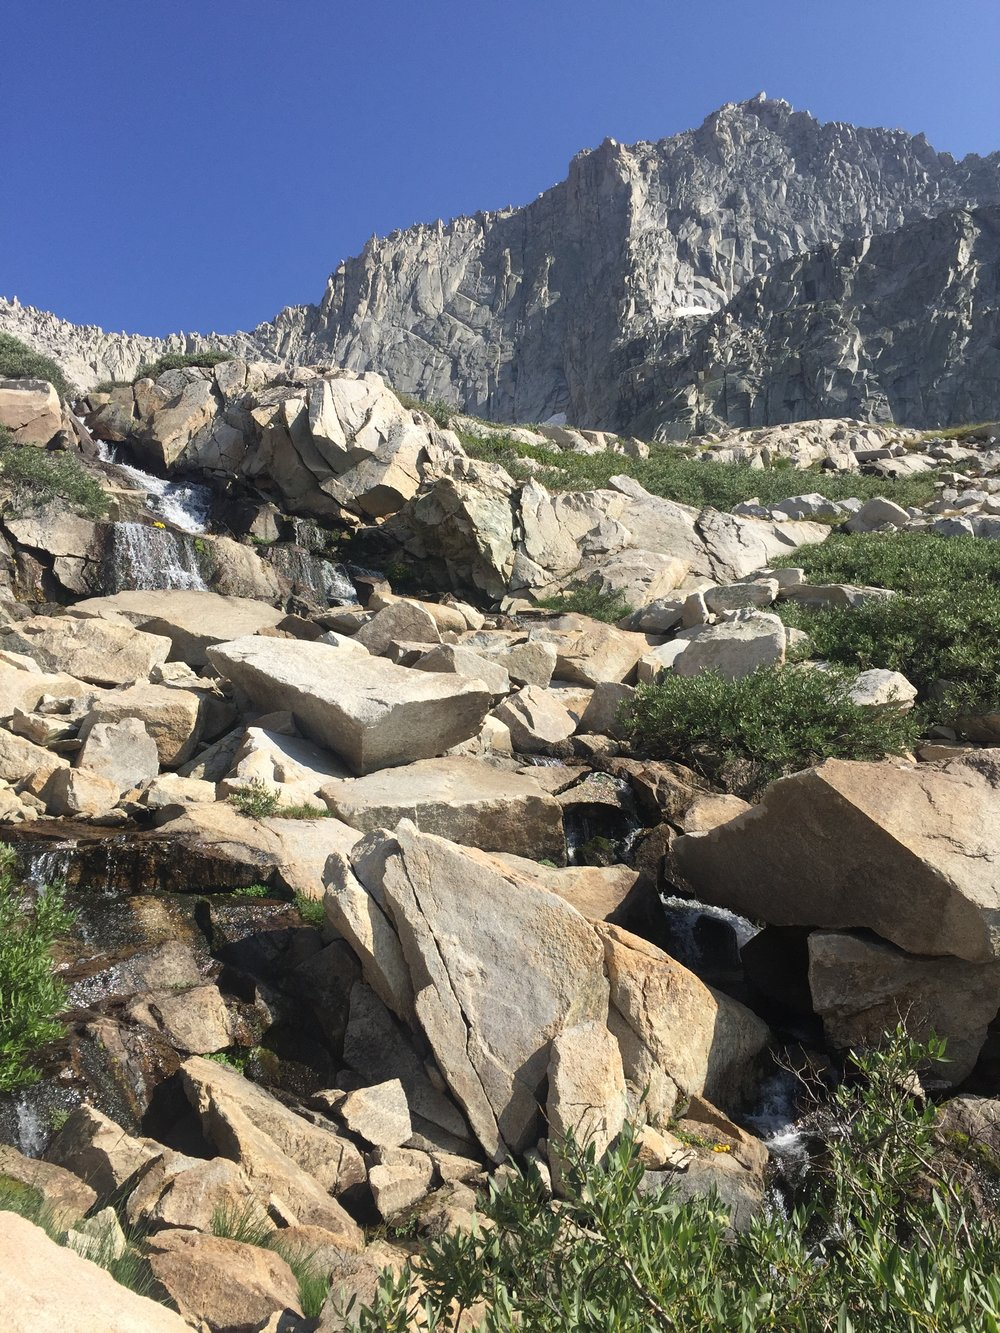 Looking back at the water that flows from Precipice down to Hamilton Lake